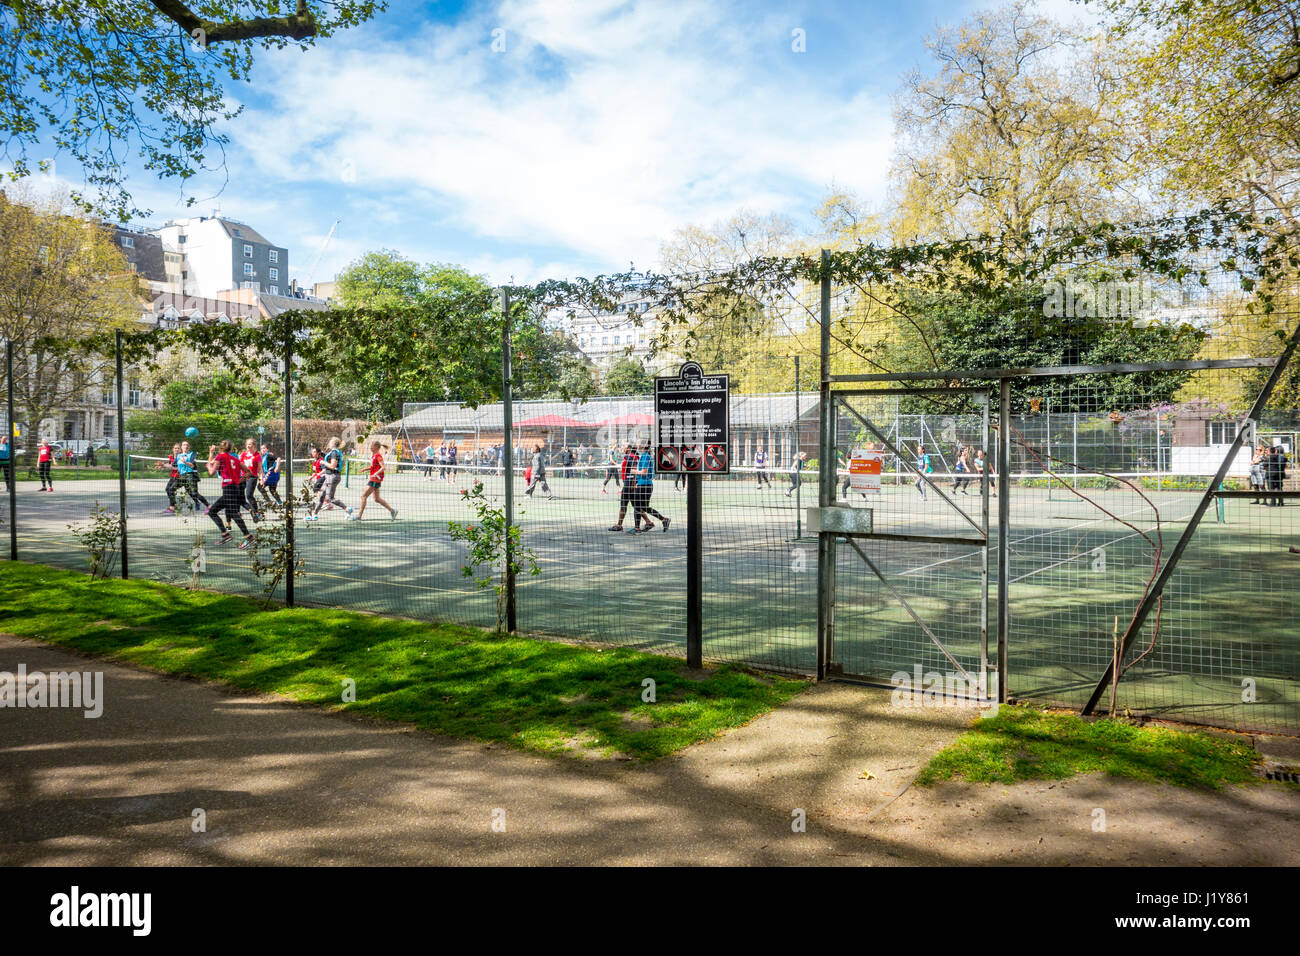 People playing games at Lincoln's Inn Fields tennis and netball courts. London, UK - Stock Image